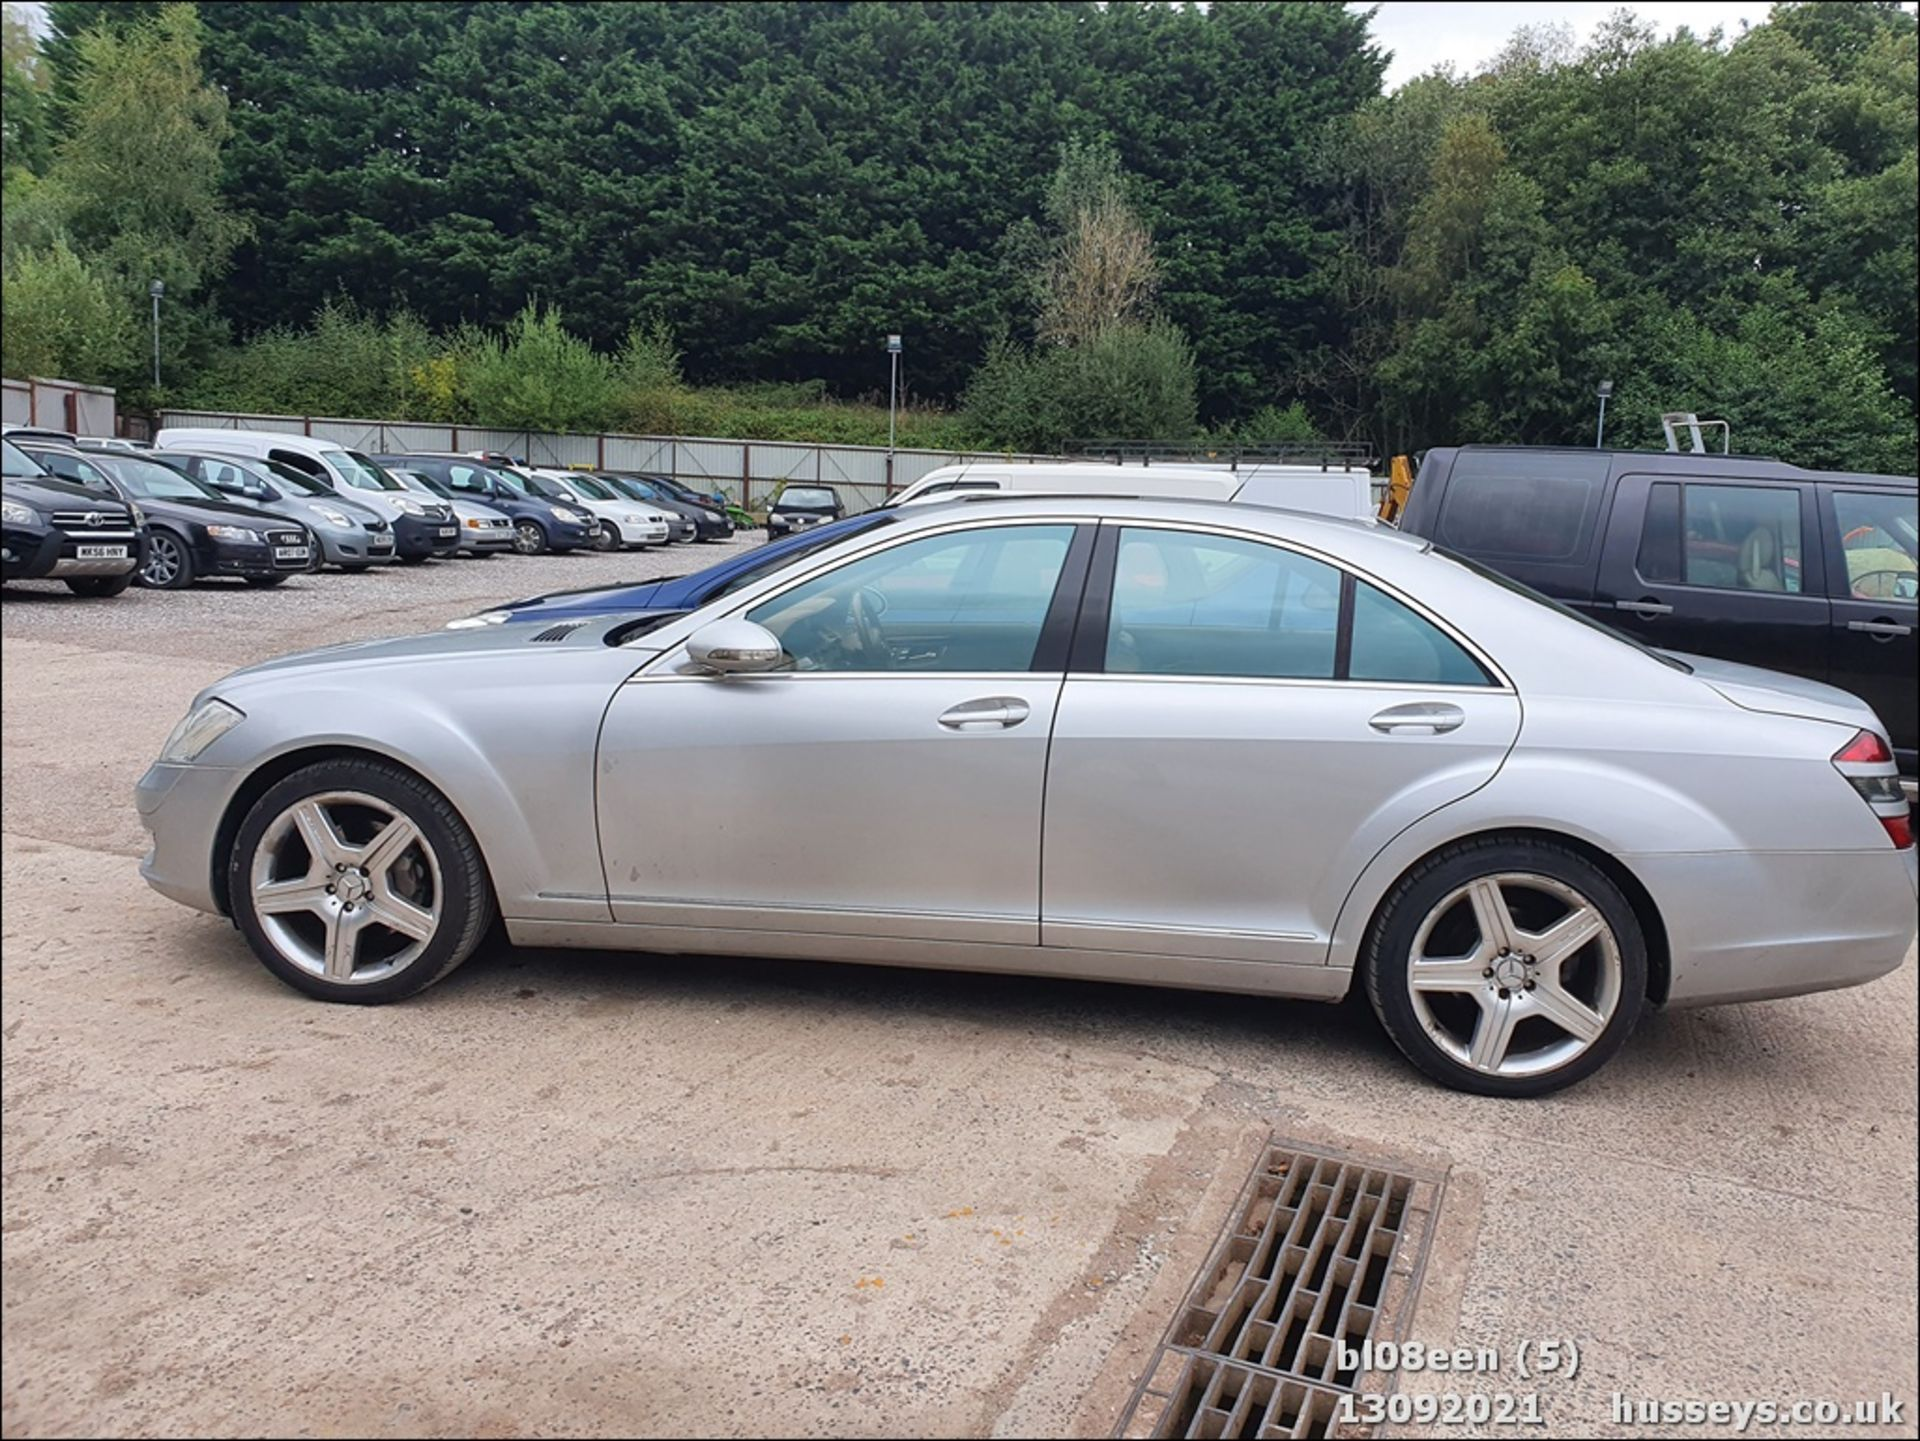 08/08 MERCEDES S320 CDI AUTO - 2987cc 4dr Saloon (Silver, 205k) - Image 5 of 16